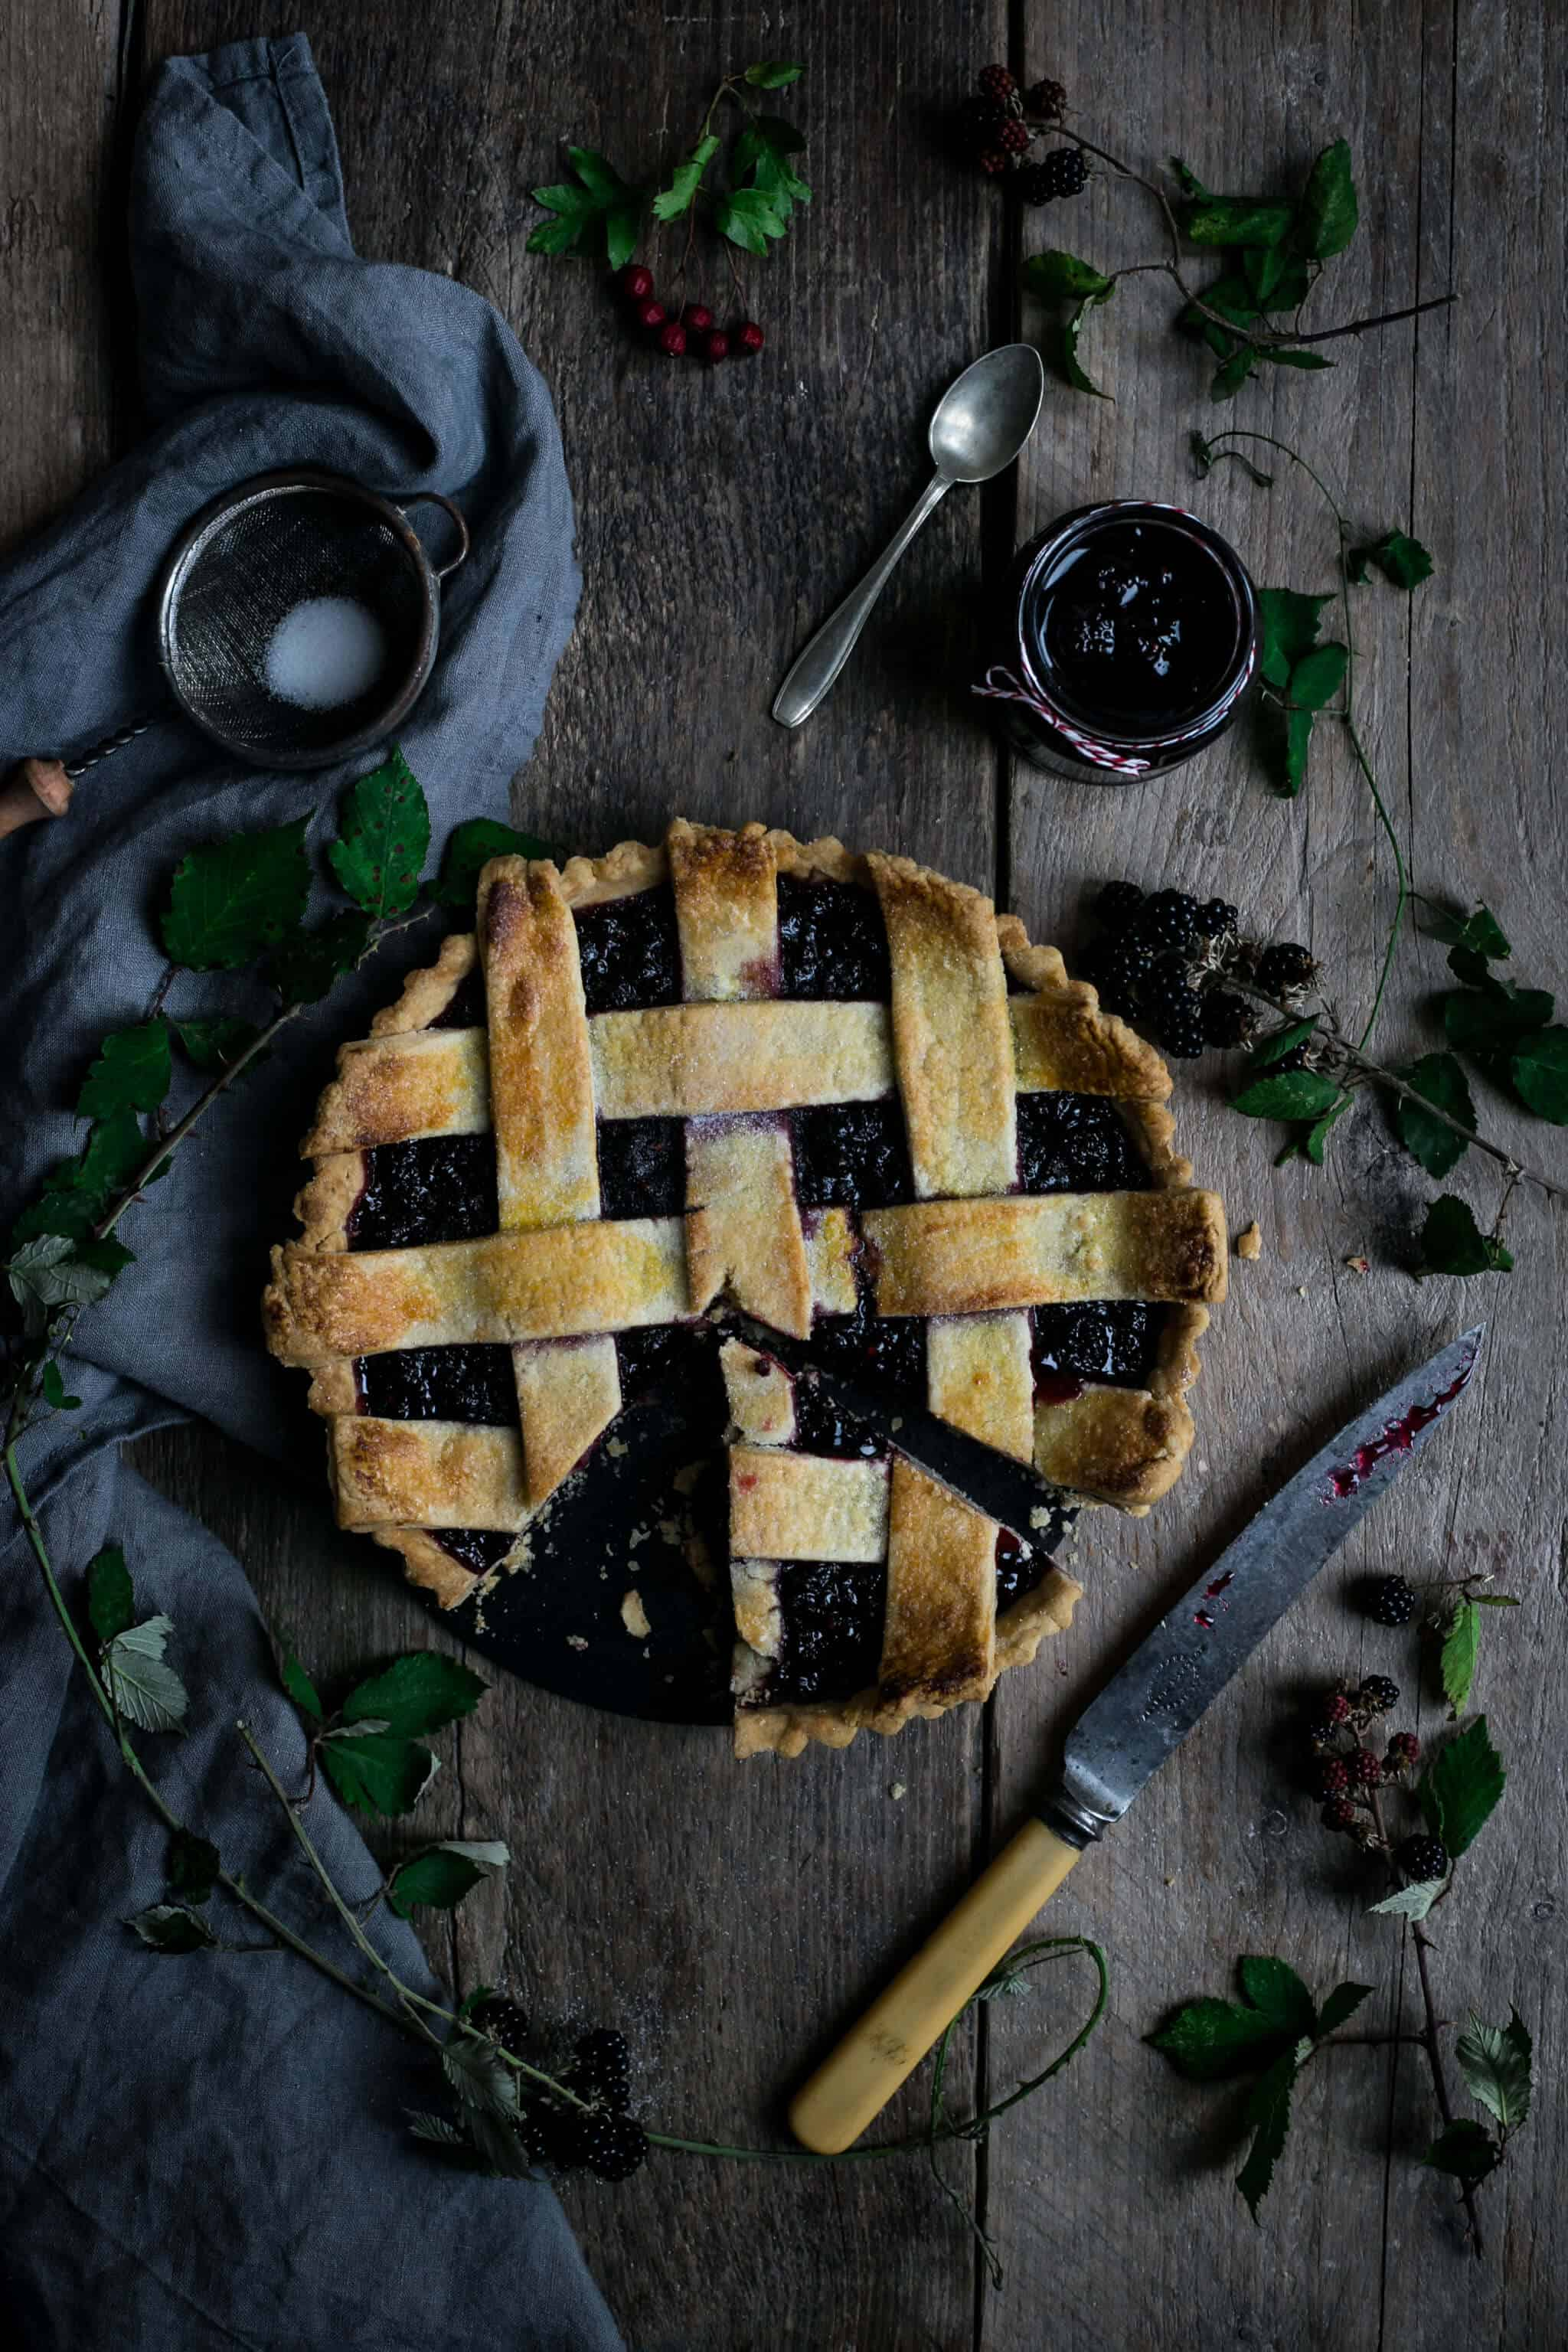 Beautiful blackberry jam and lattice tart | via @annabanana.co